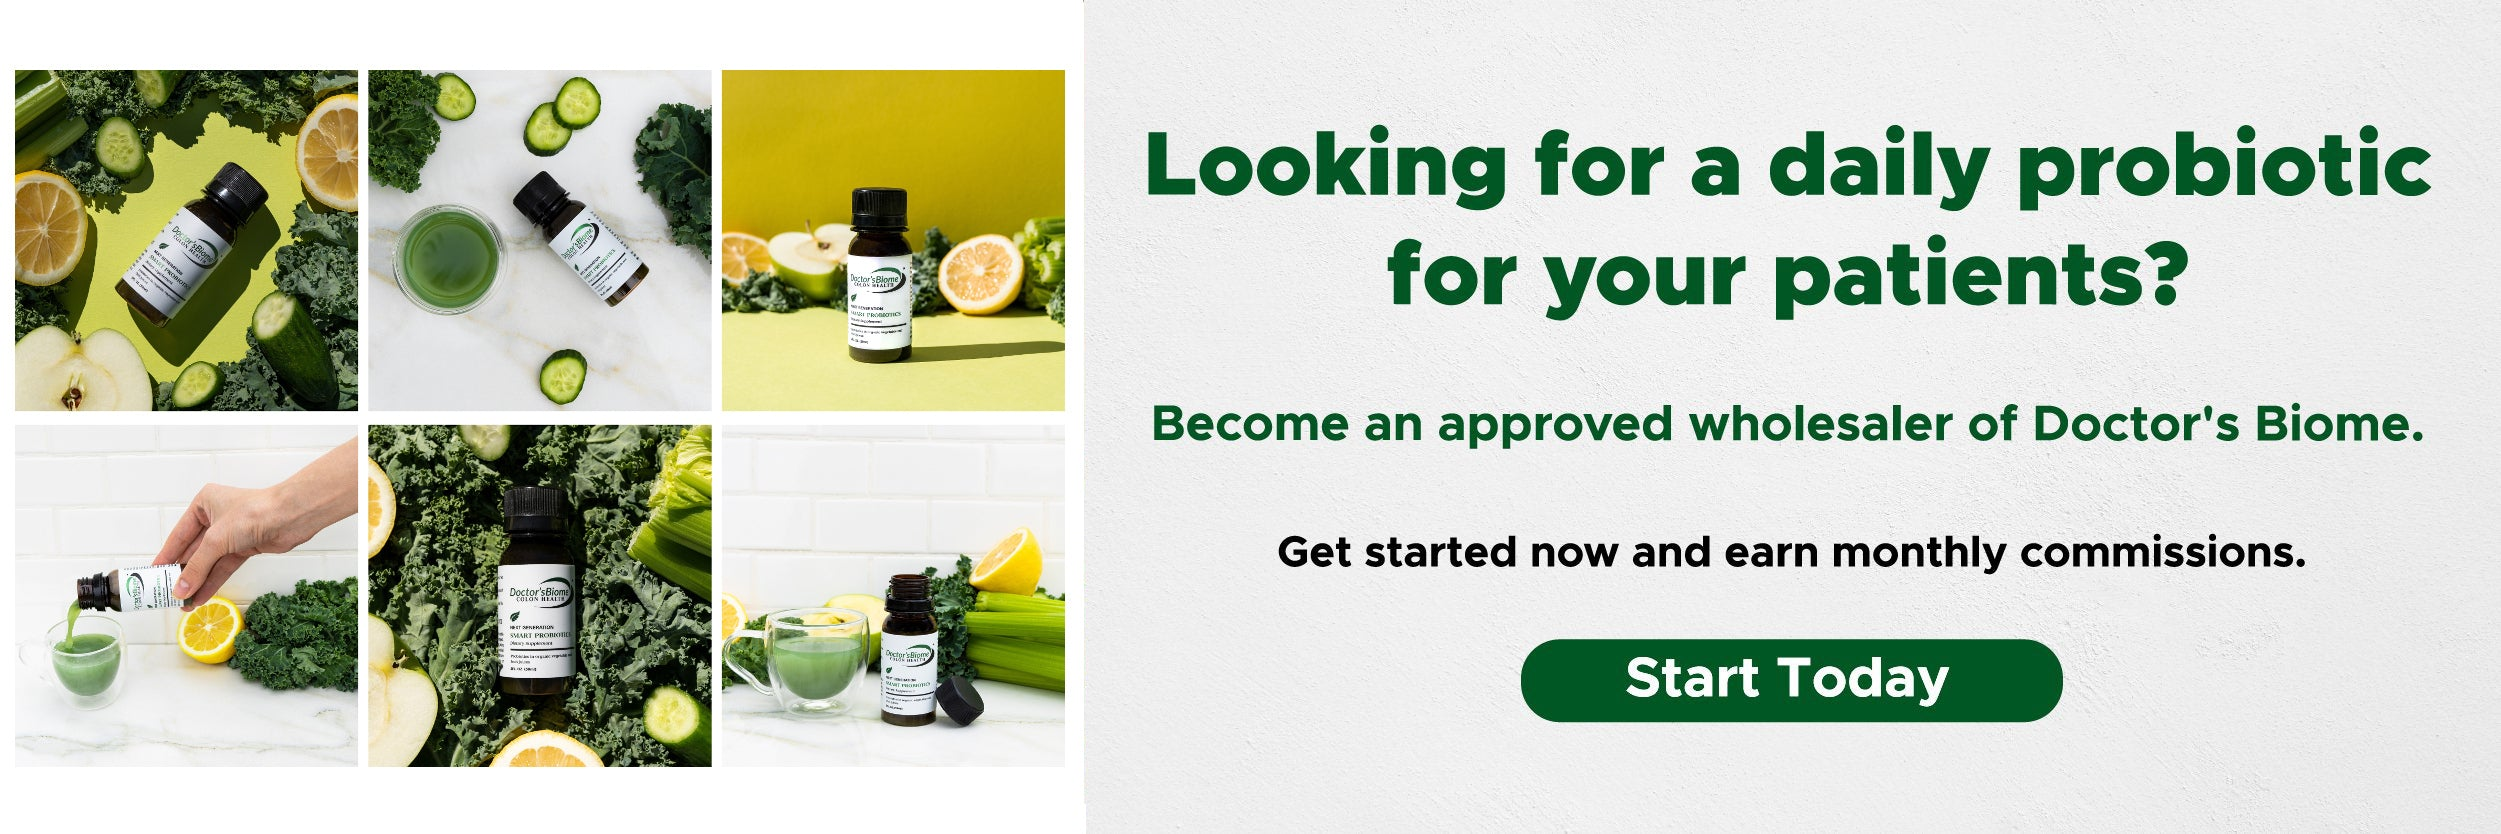 Doctor's Biome Wholesale Application CTA